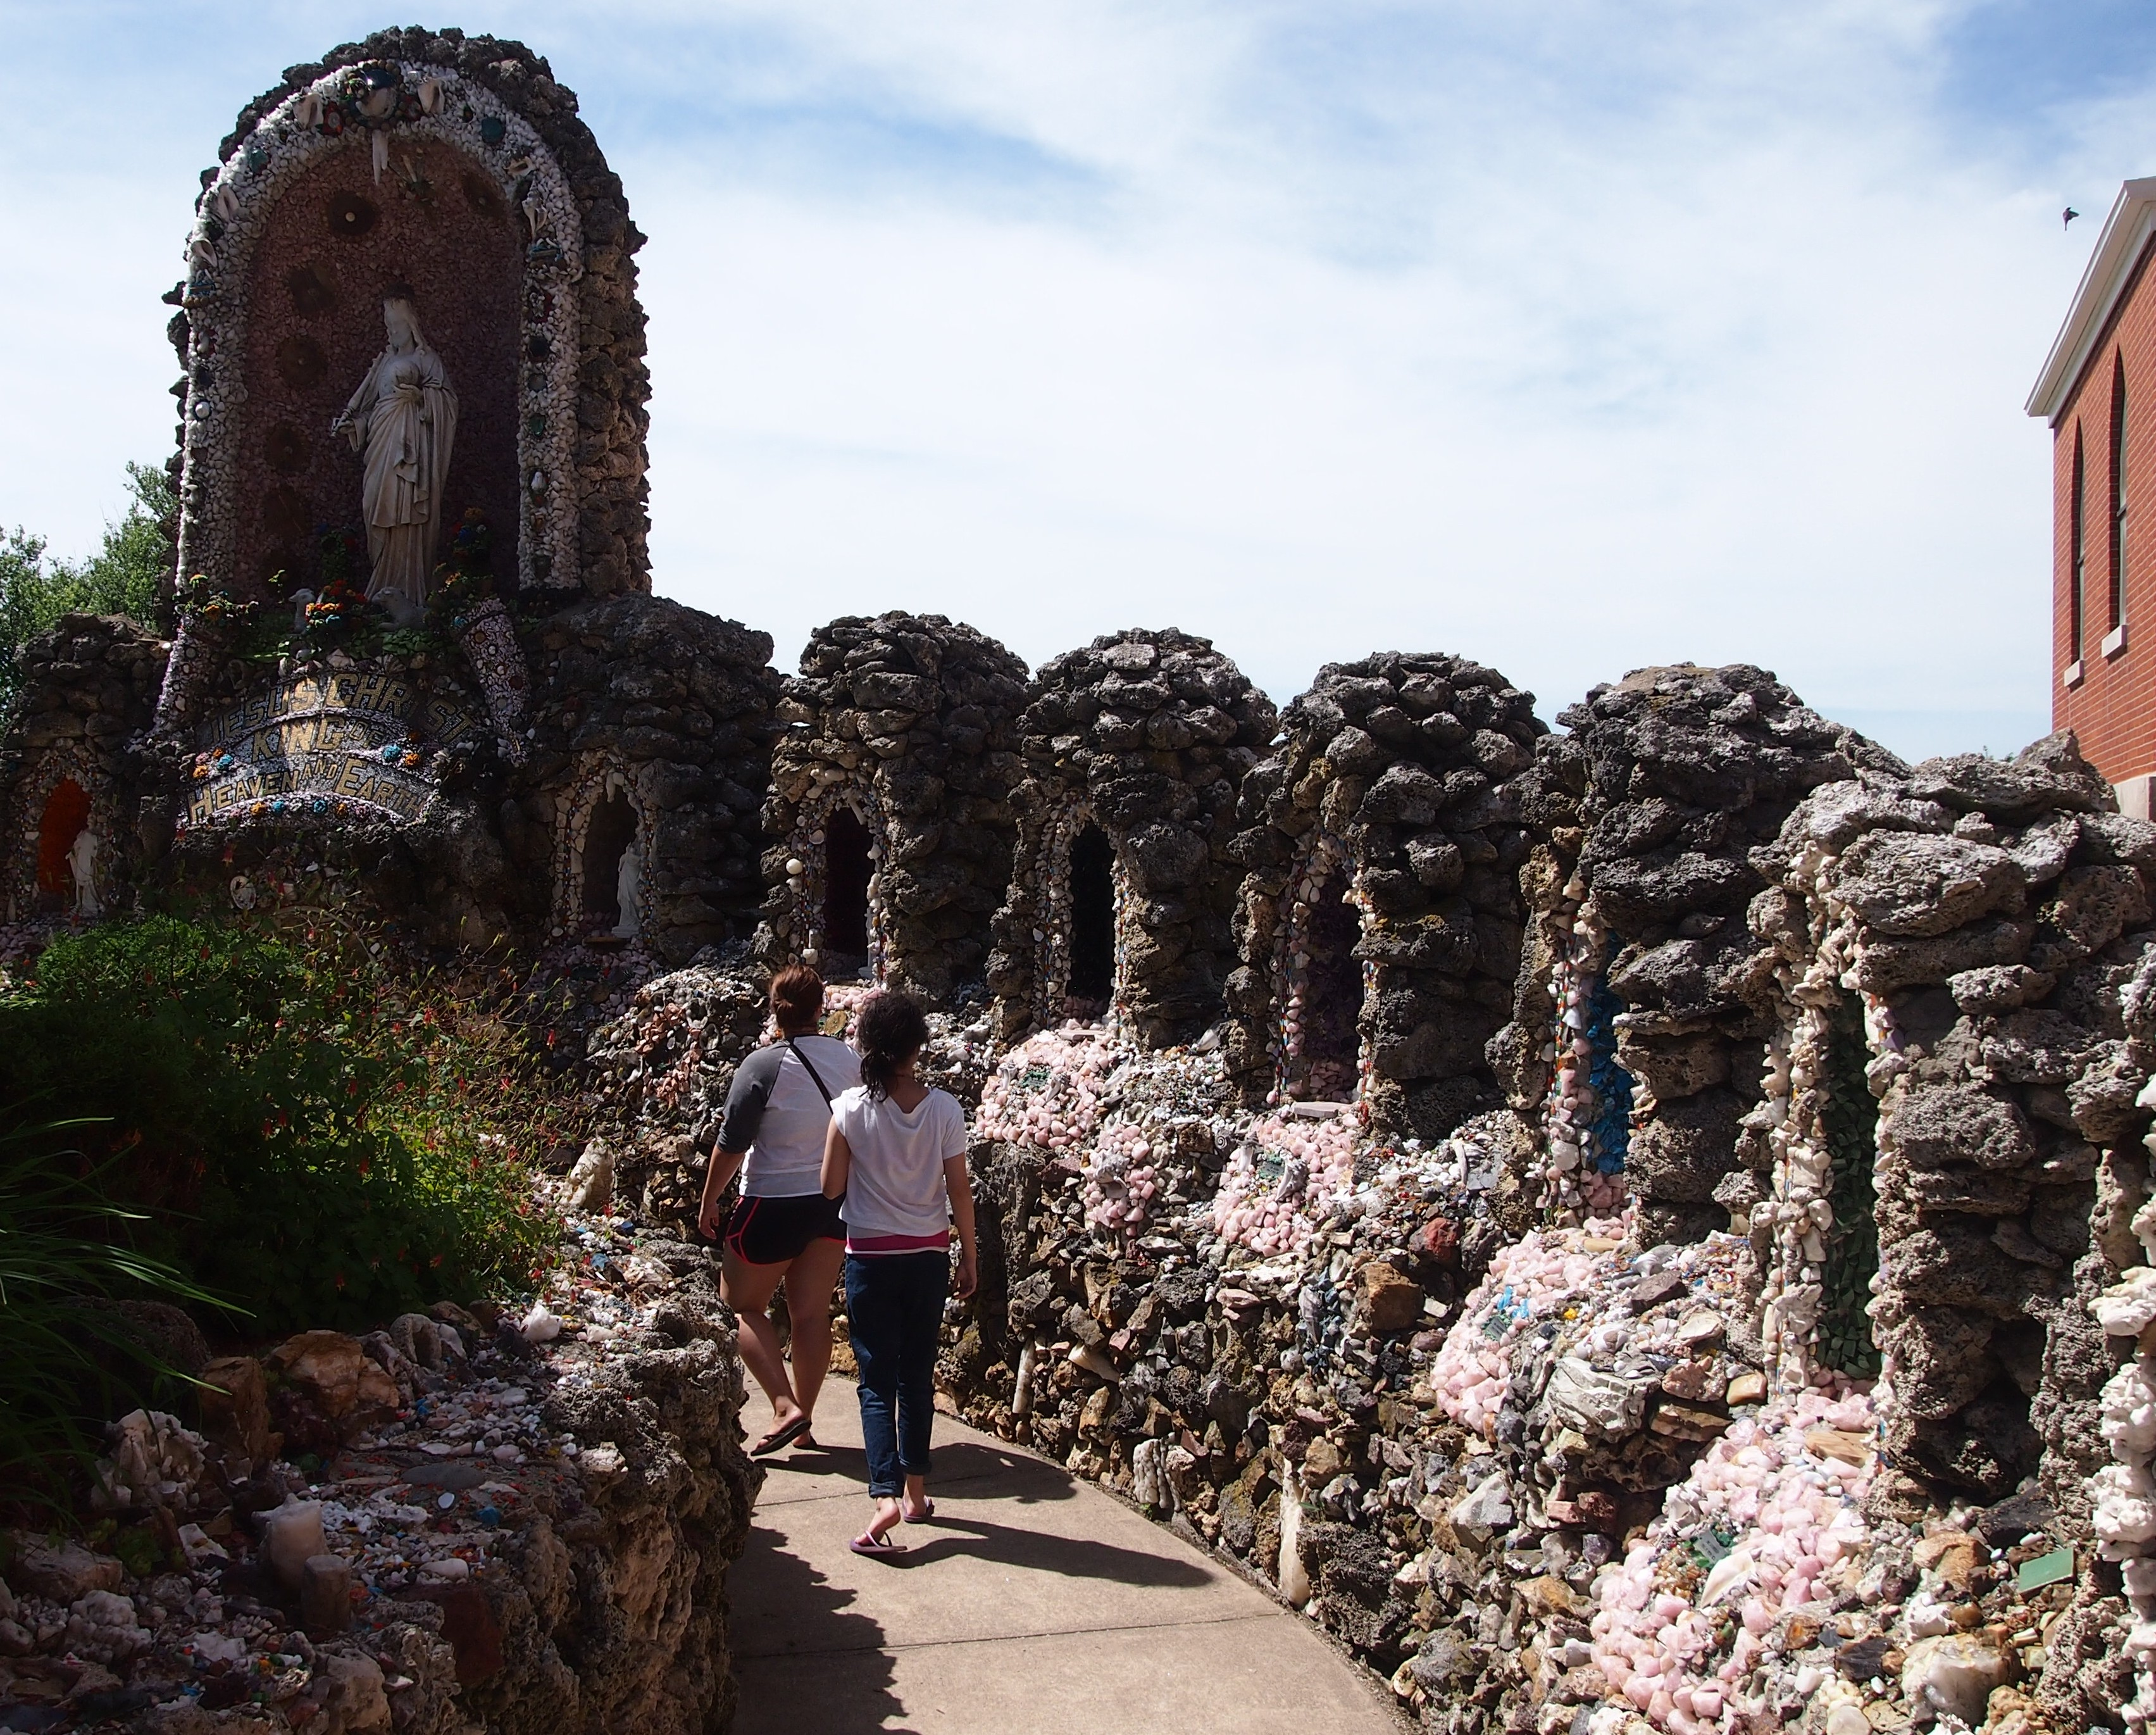 Dickeyville Grotto, June 22, 2014